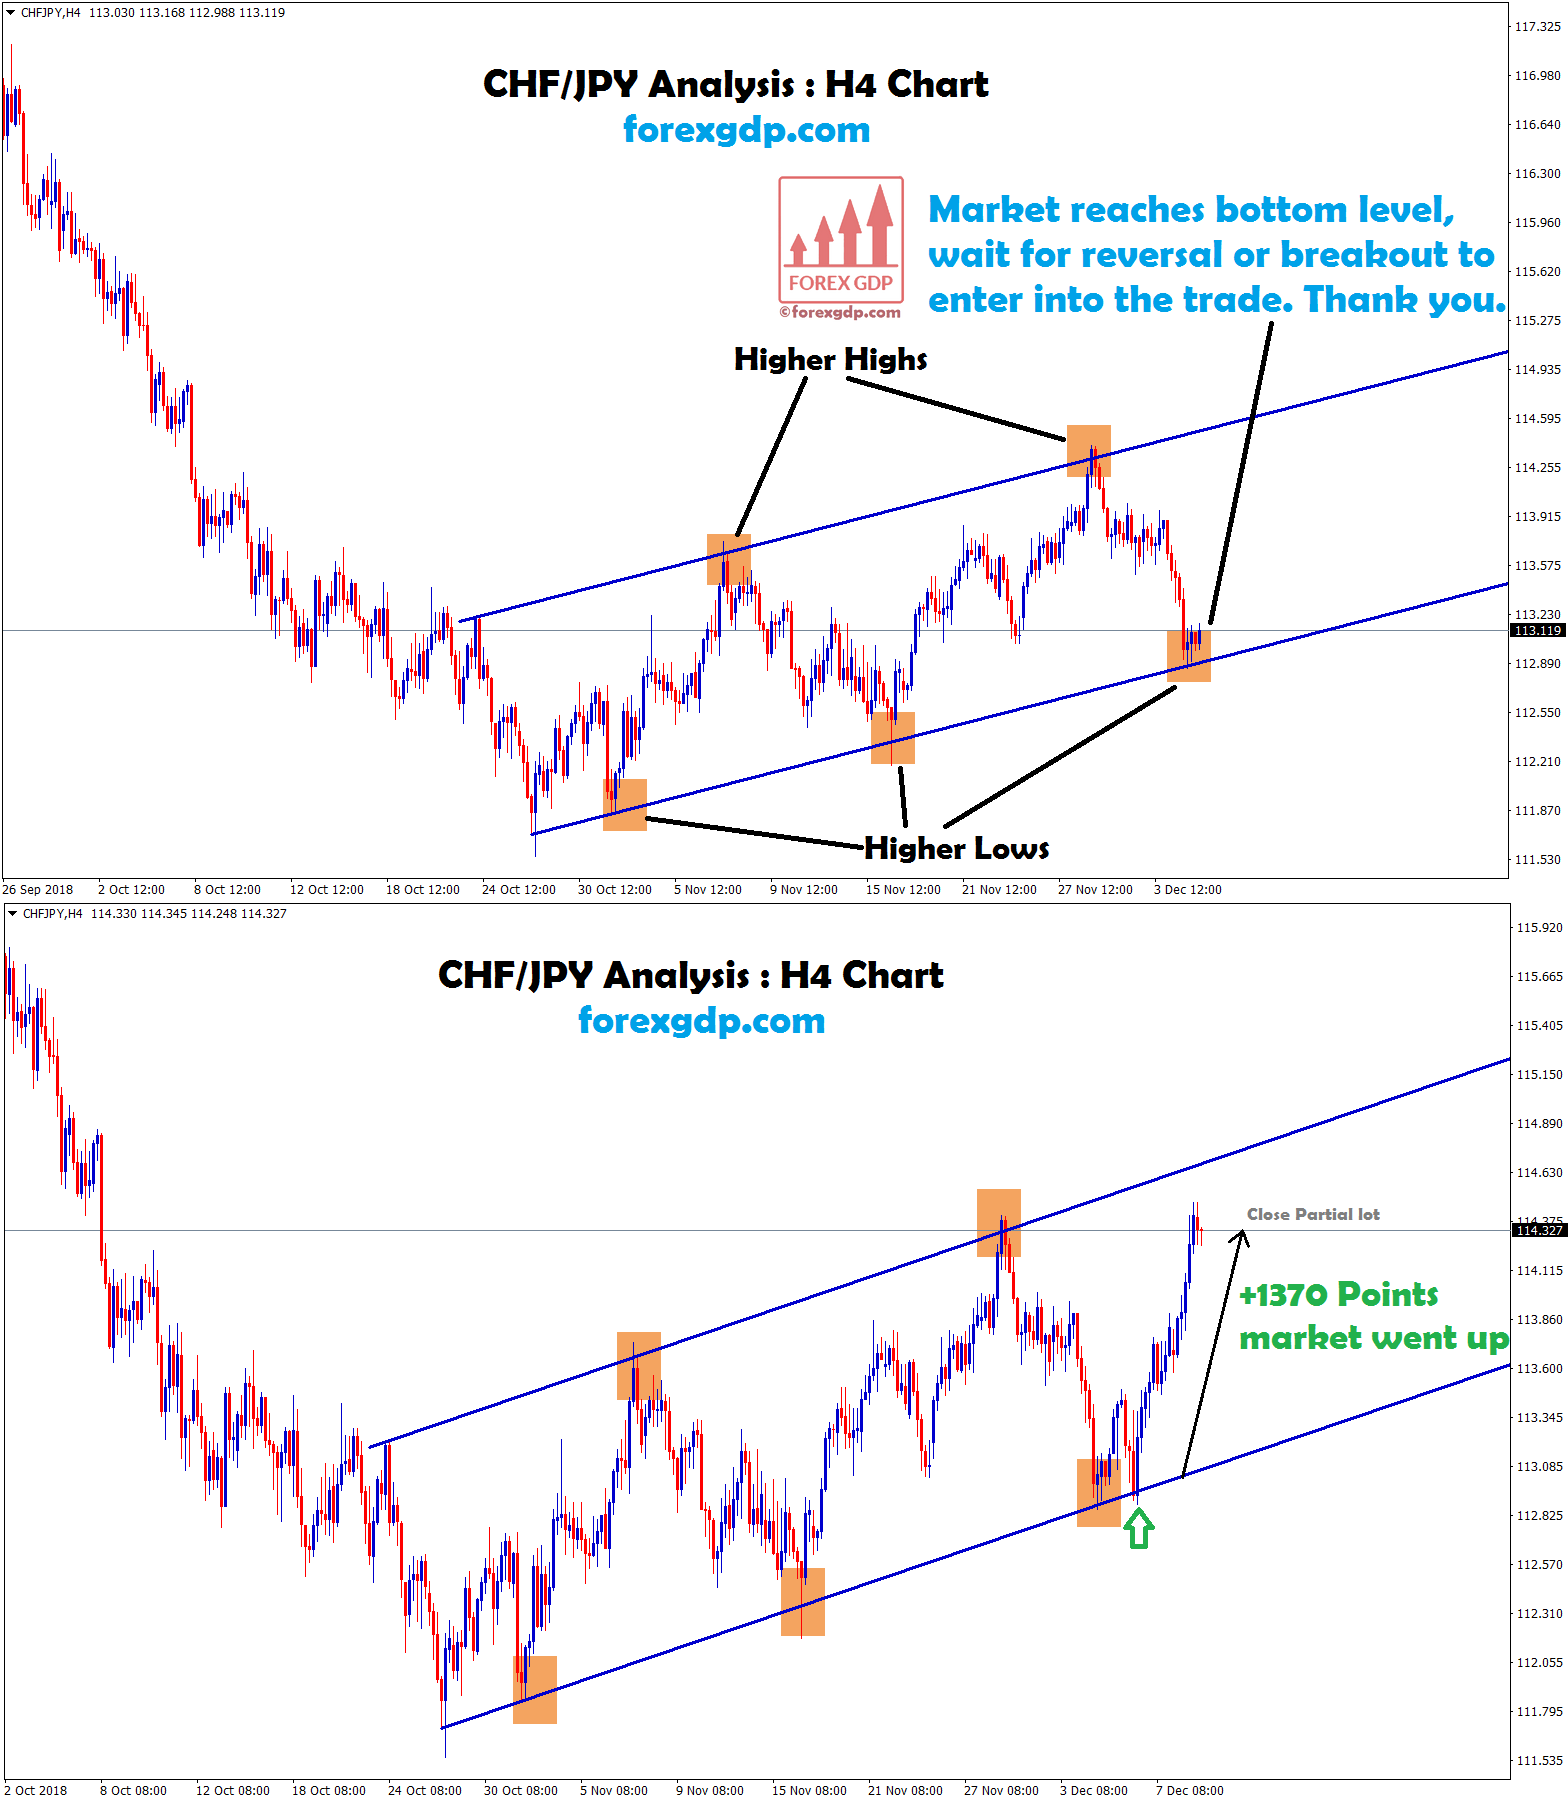 chf jpy buy signal forms higher highs,lows